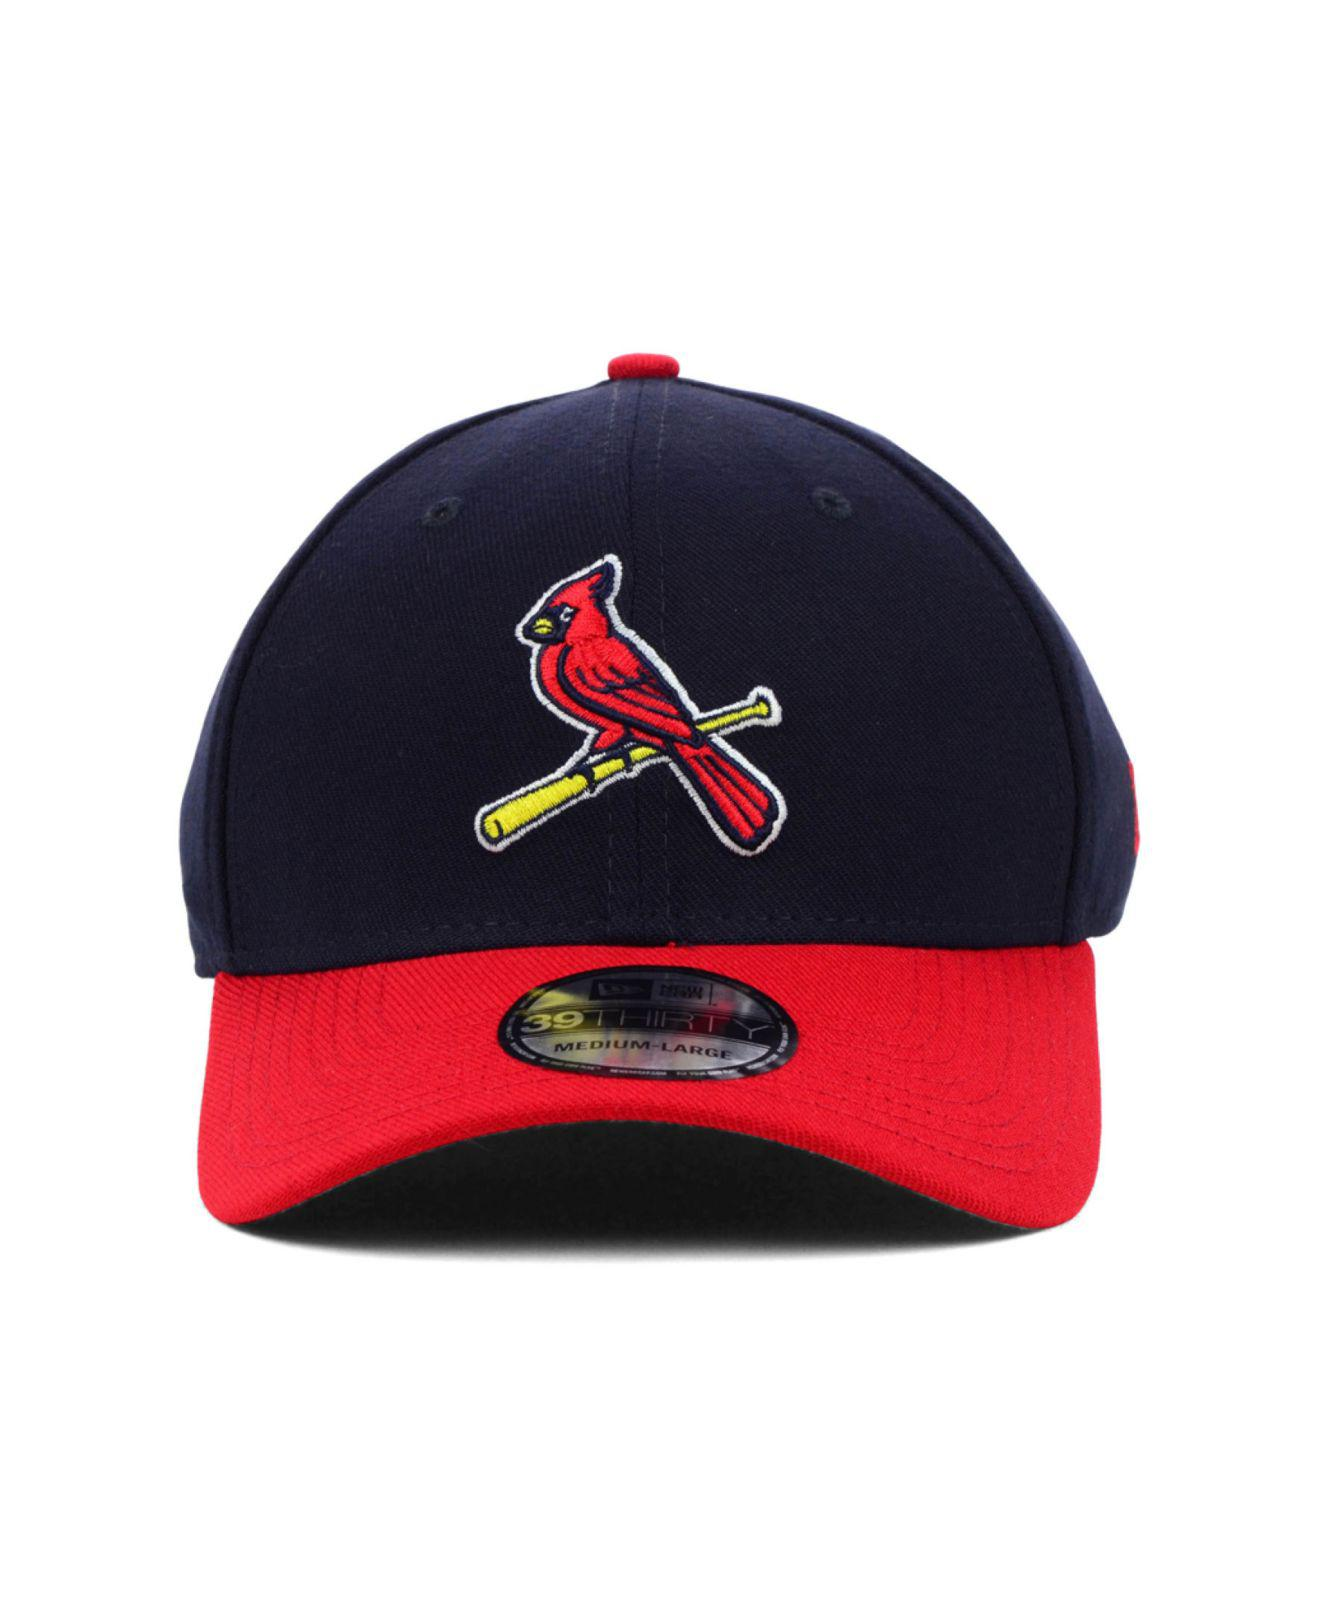 save off 26ae2 5e0f4 ... discount lyst ktz st. louis cardinals mlb team classic 39thirty cap in  blue for men